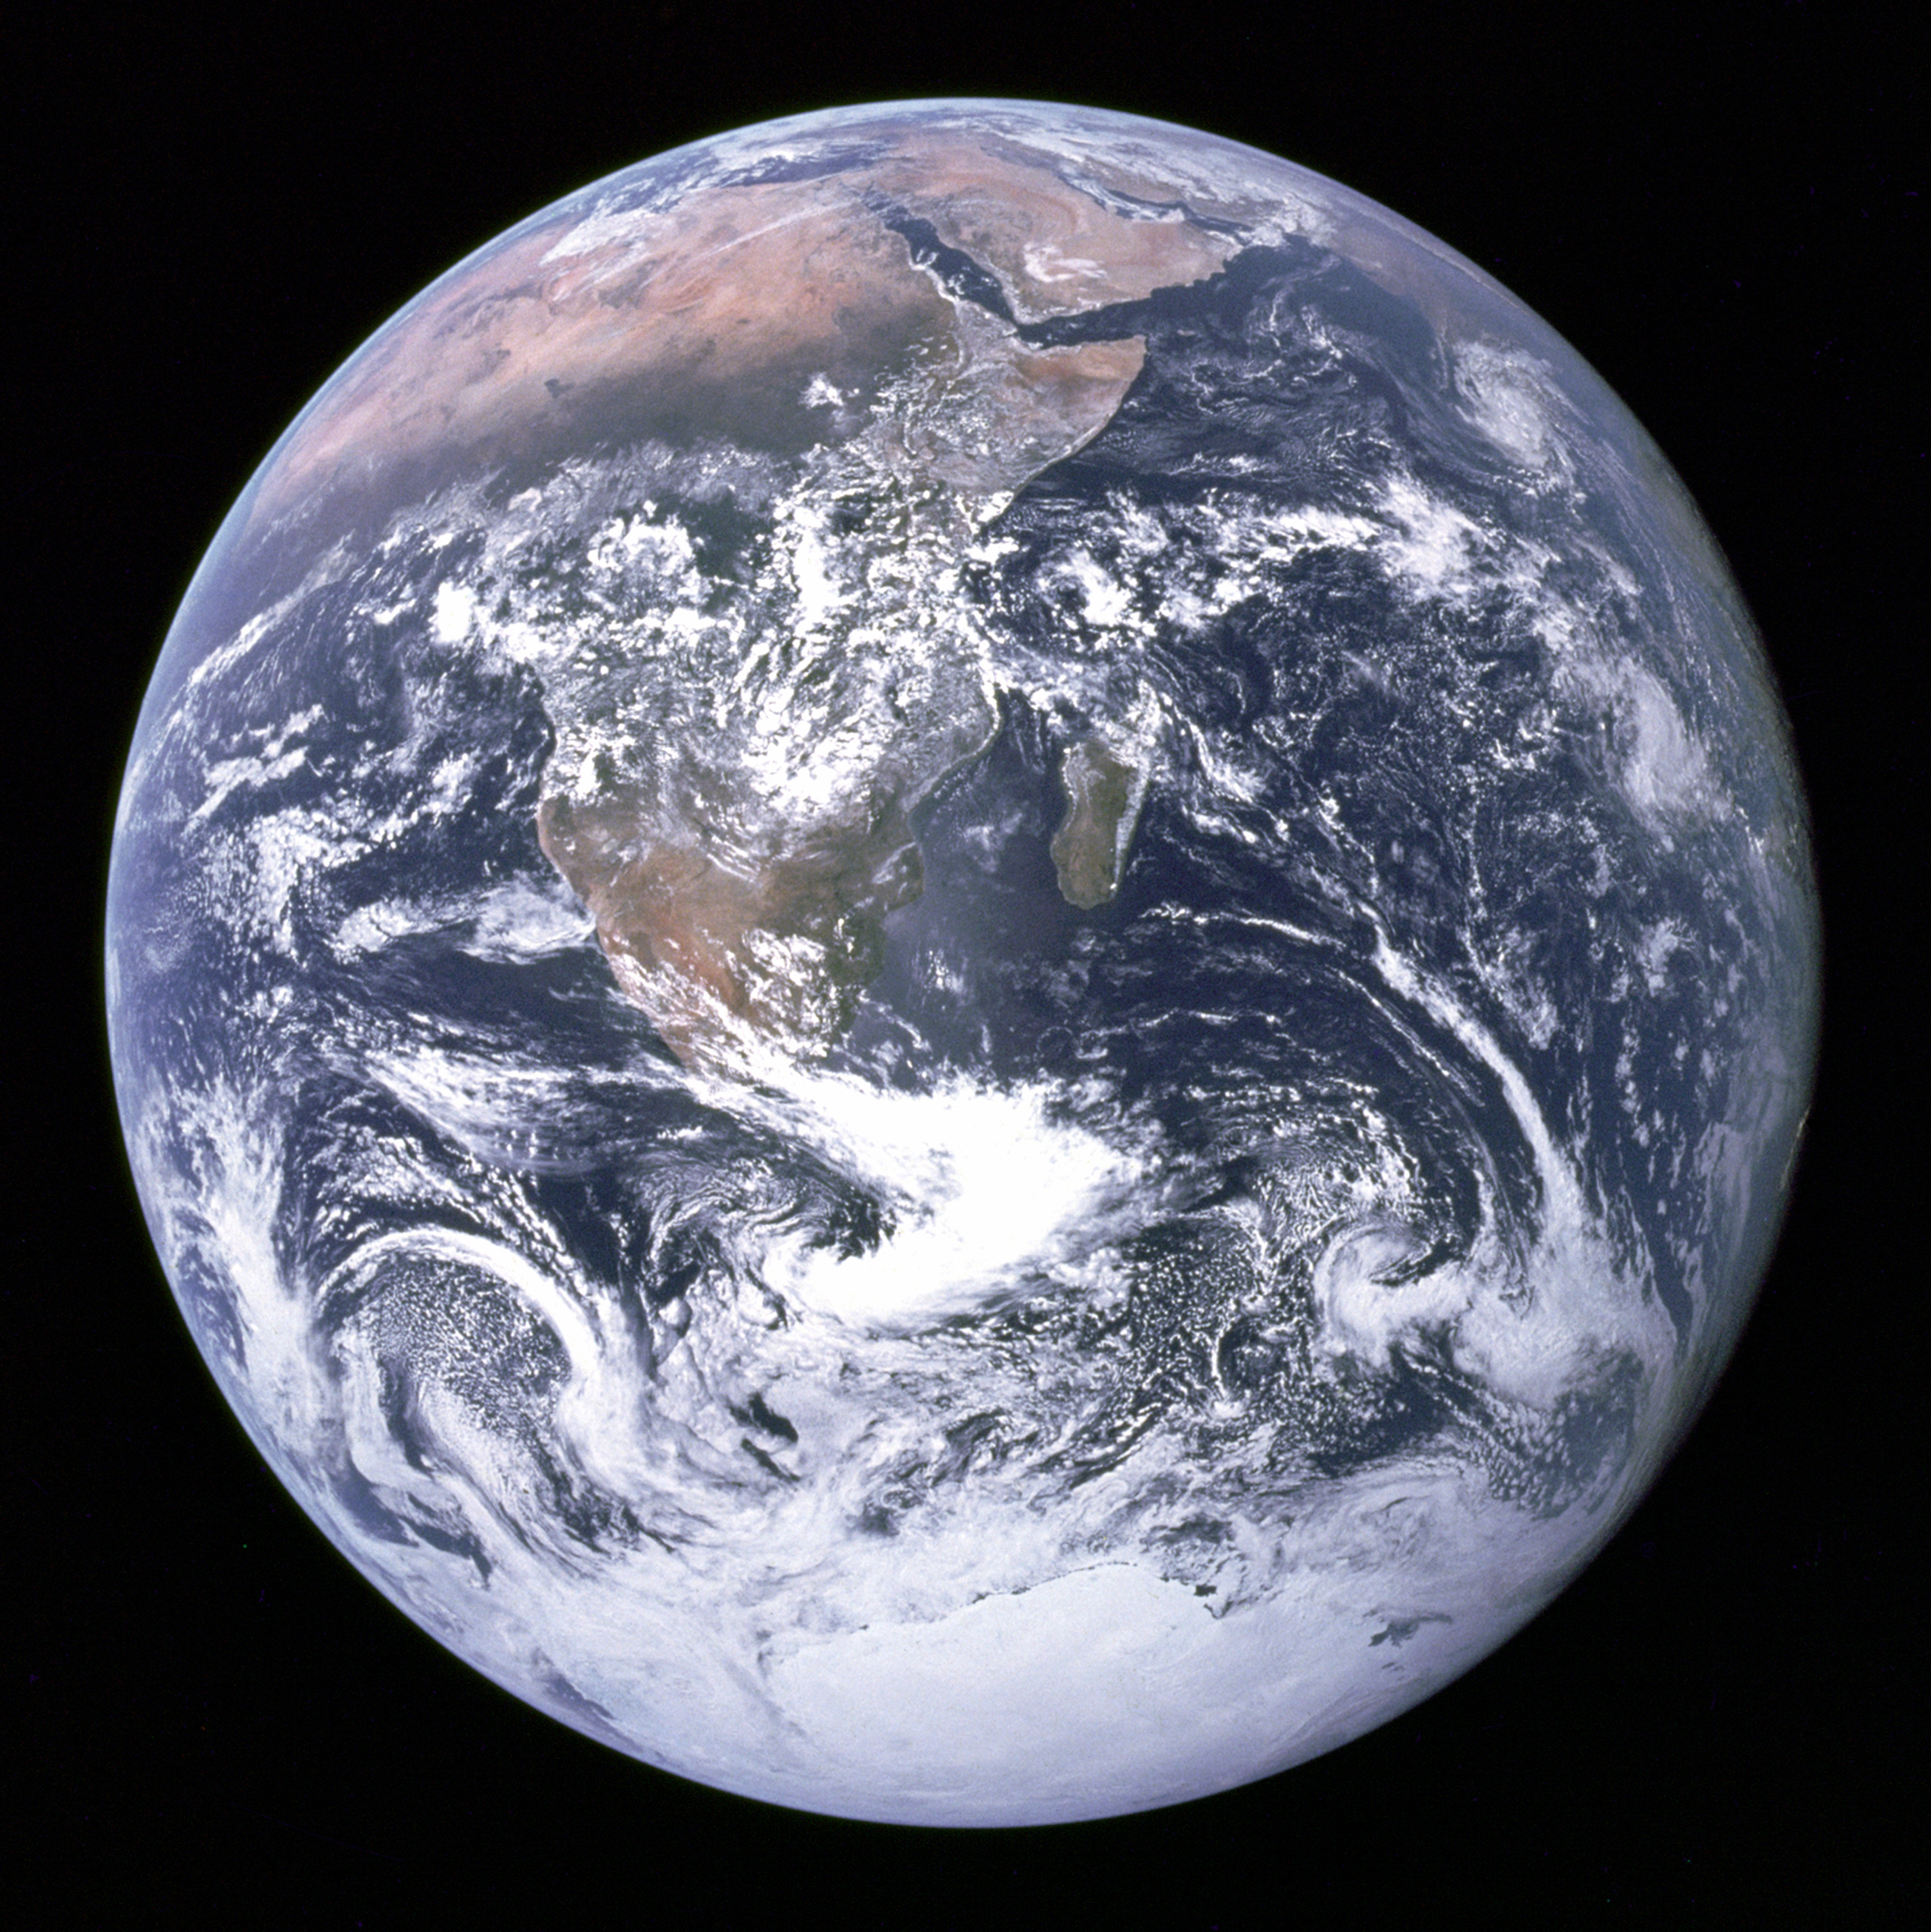 pictures by nasa - photo #4